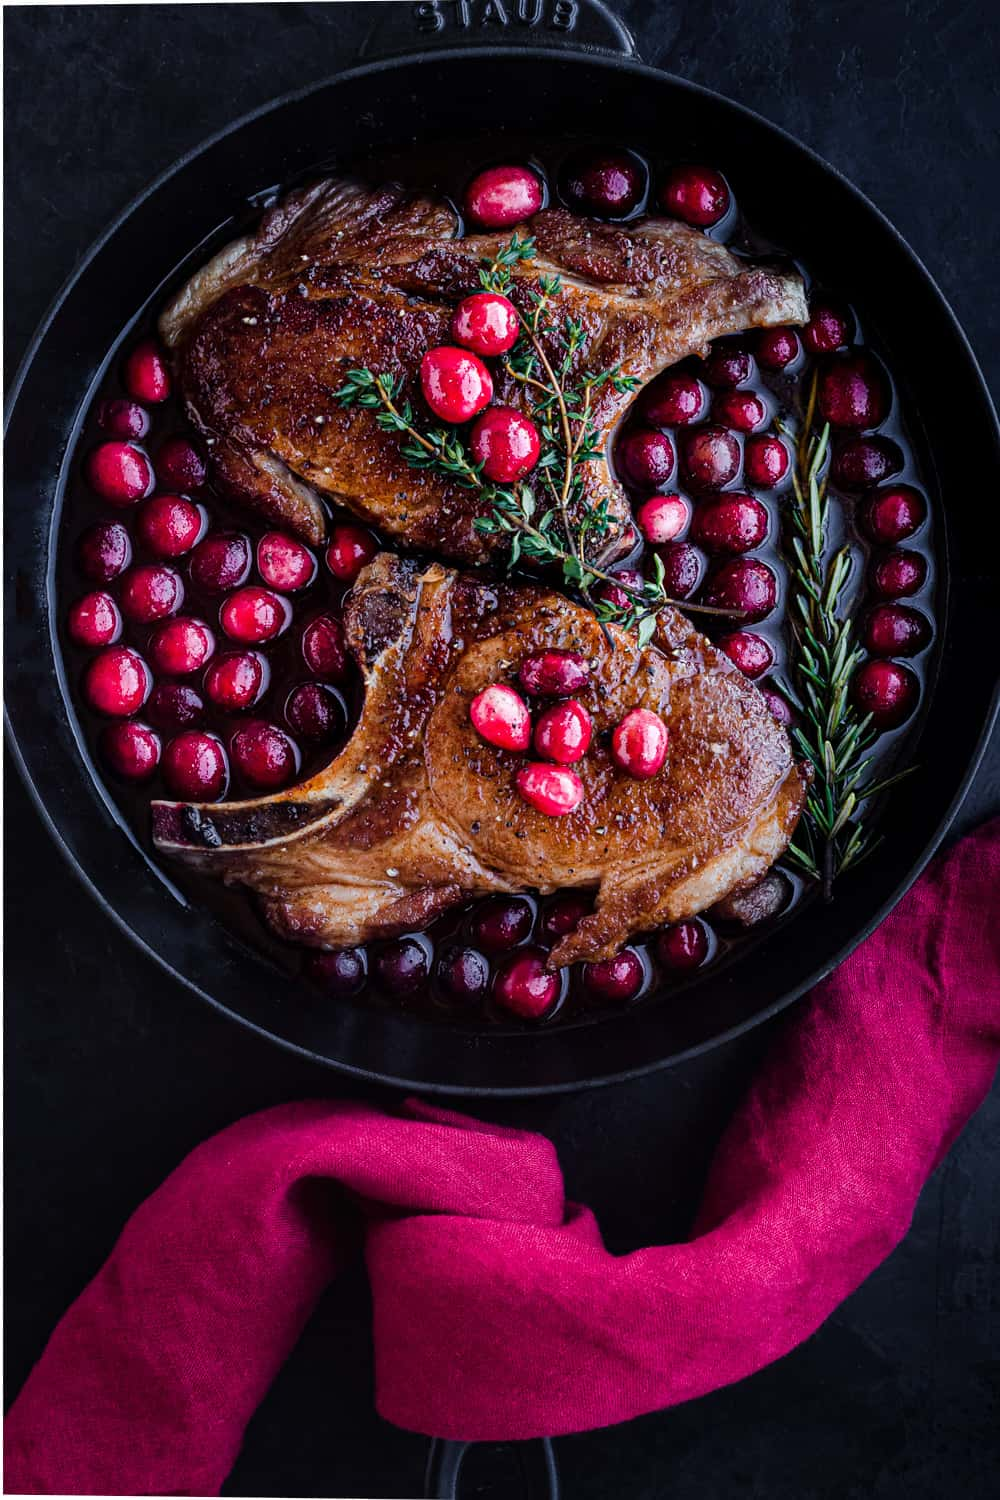 Post sear and pre-oven pork chop overhead shot; chops are with the cranberry sauce in a cast iron skillet with a red linen on the handle; black background.